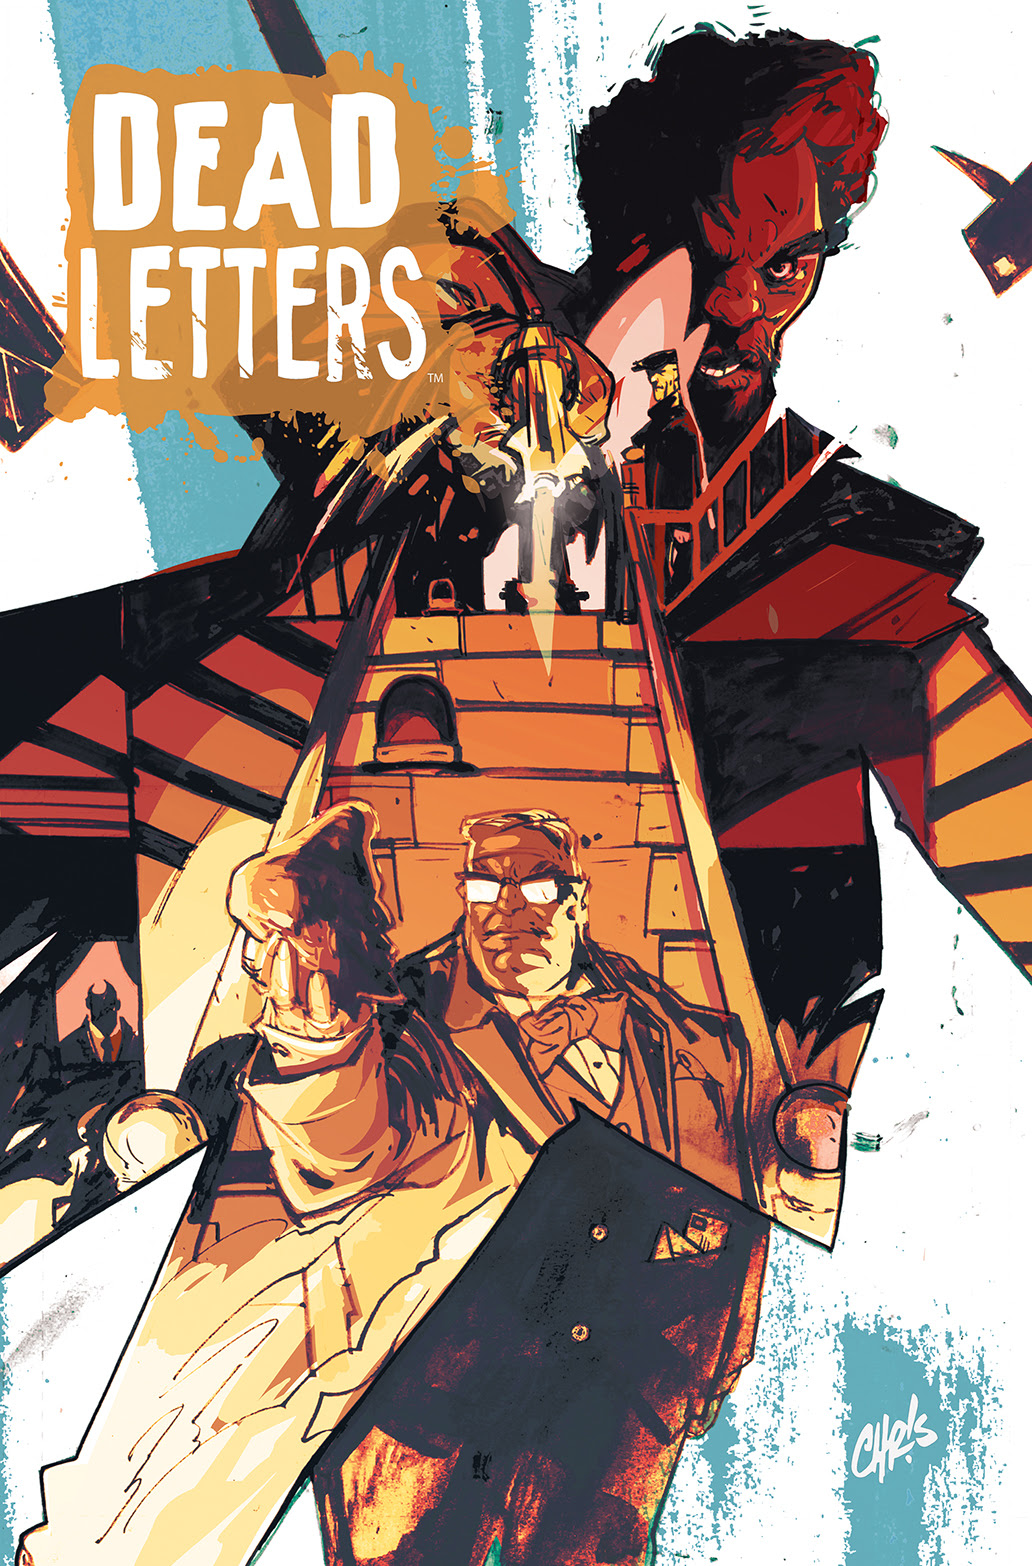 DEAD LETTERS #2 Cover A by Chris Visions